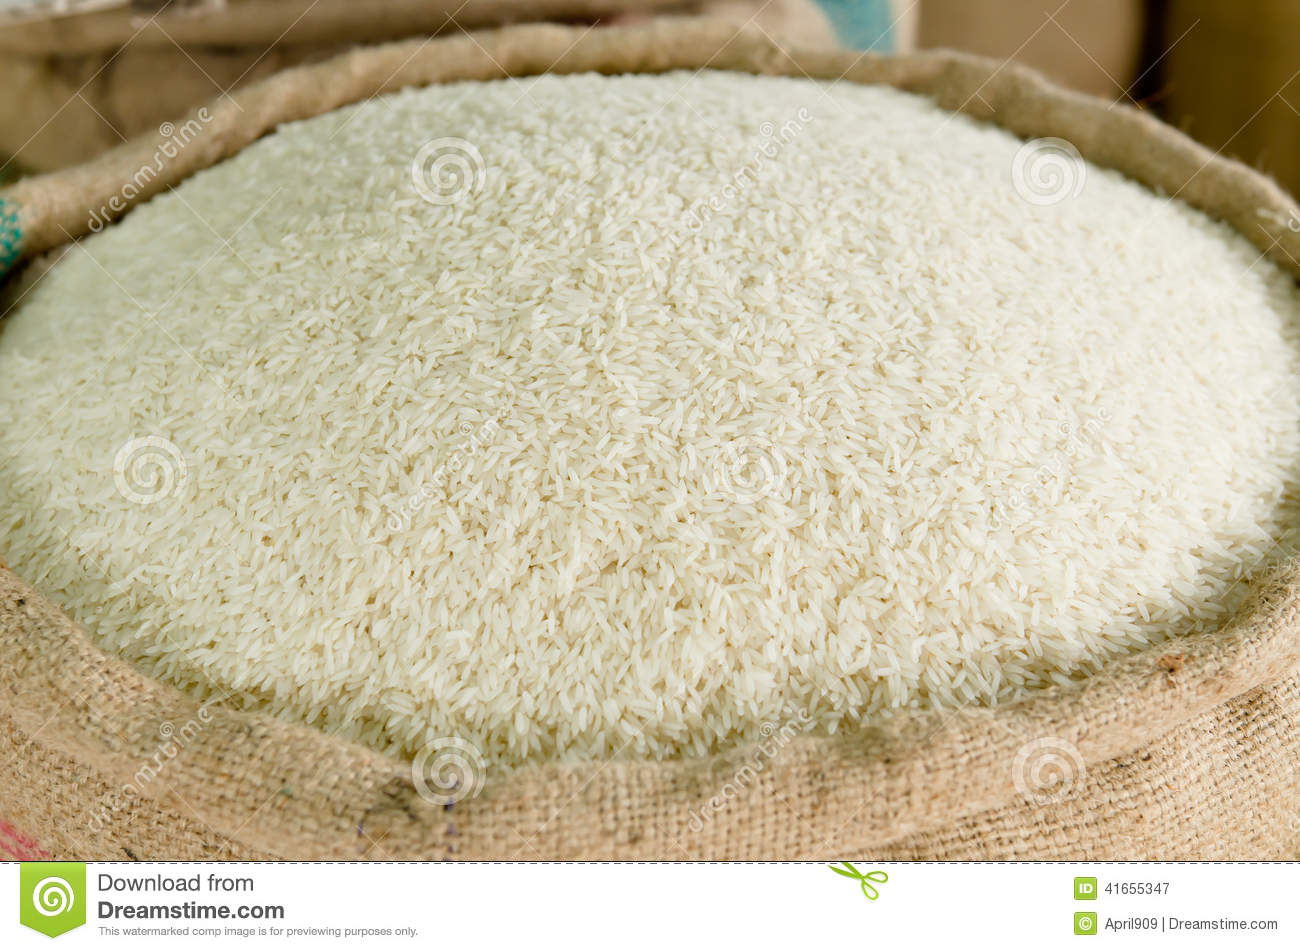 Rice in a sack stock image. Image of people, ready ...